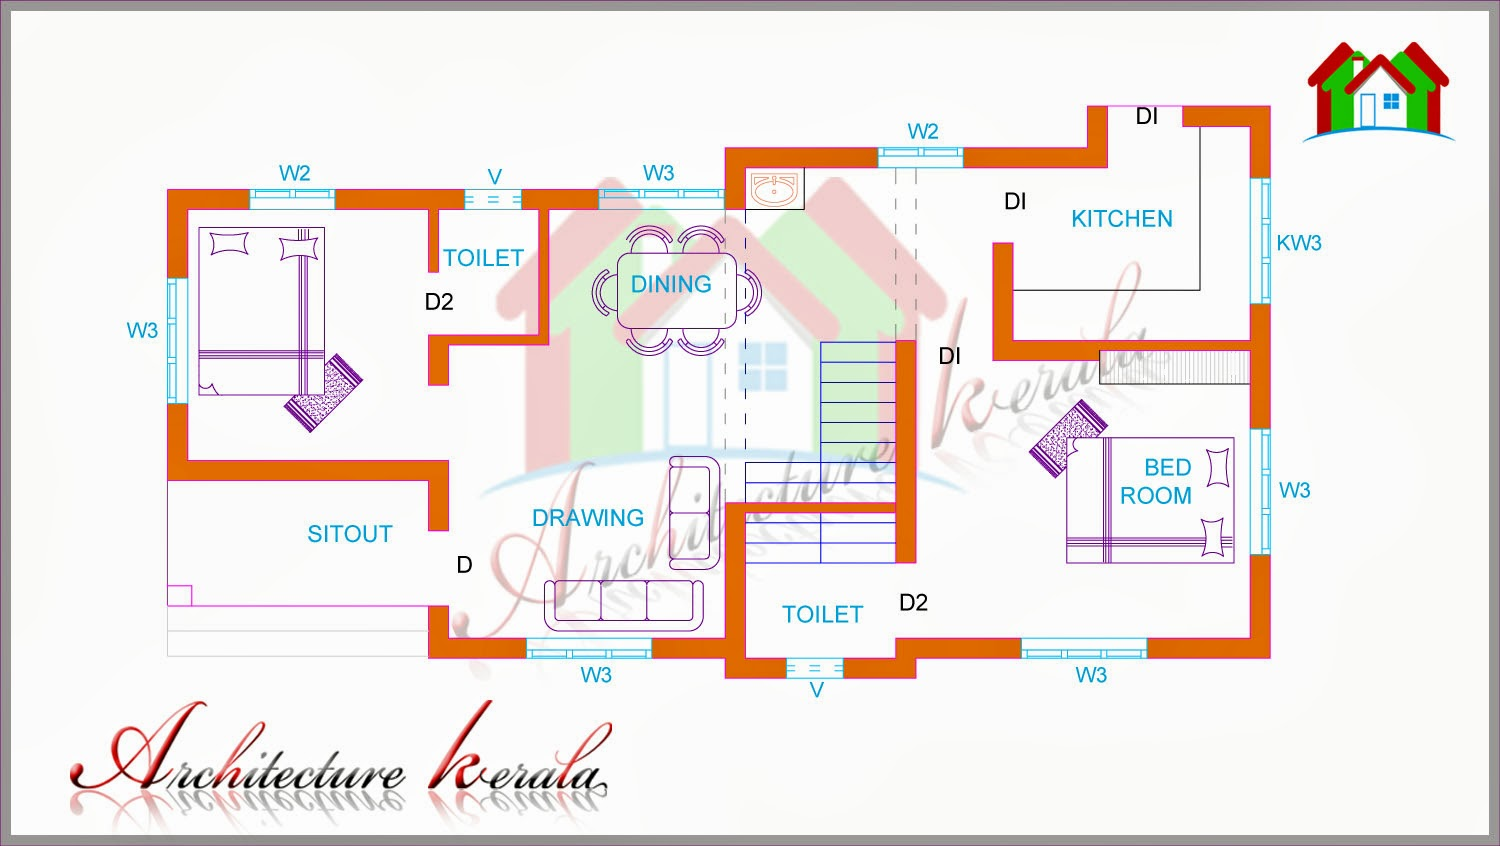 Two bedroom house plan for small families small plots for 2 bedroom house plans in kerala